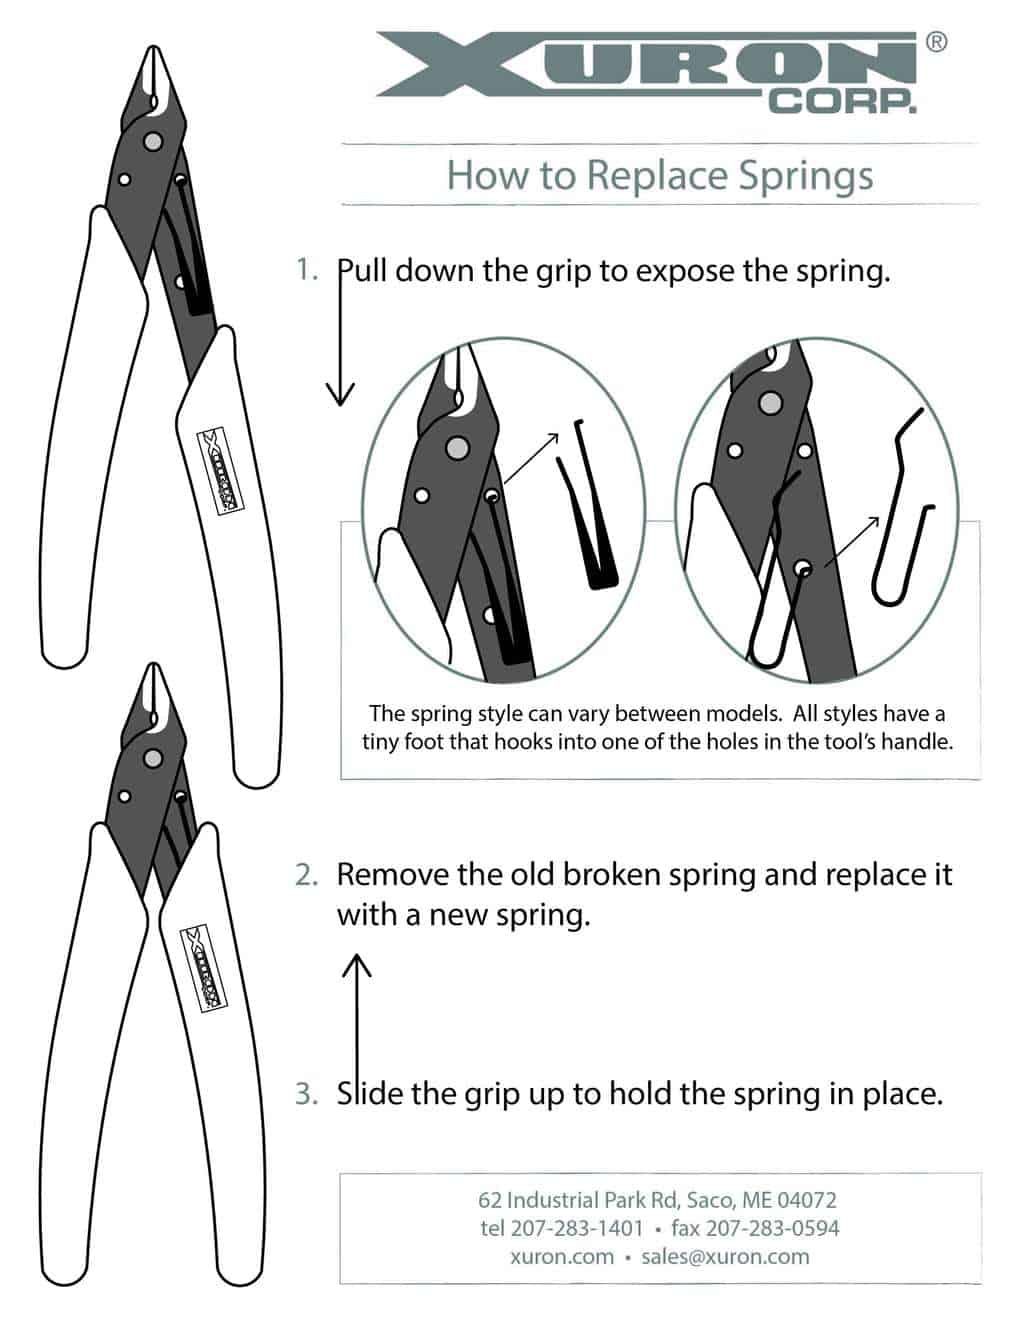 How to replace springs on Xuron® Cutters and Pliers.